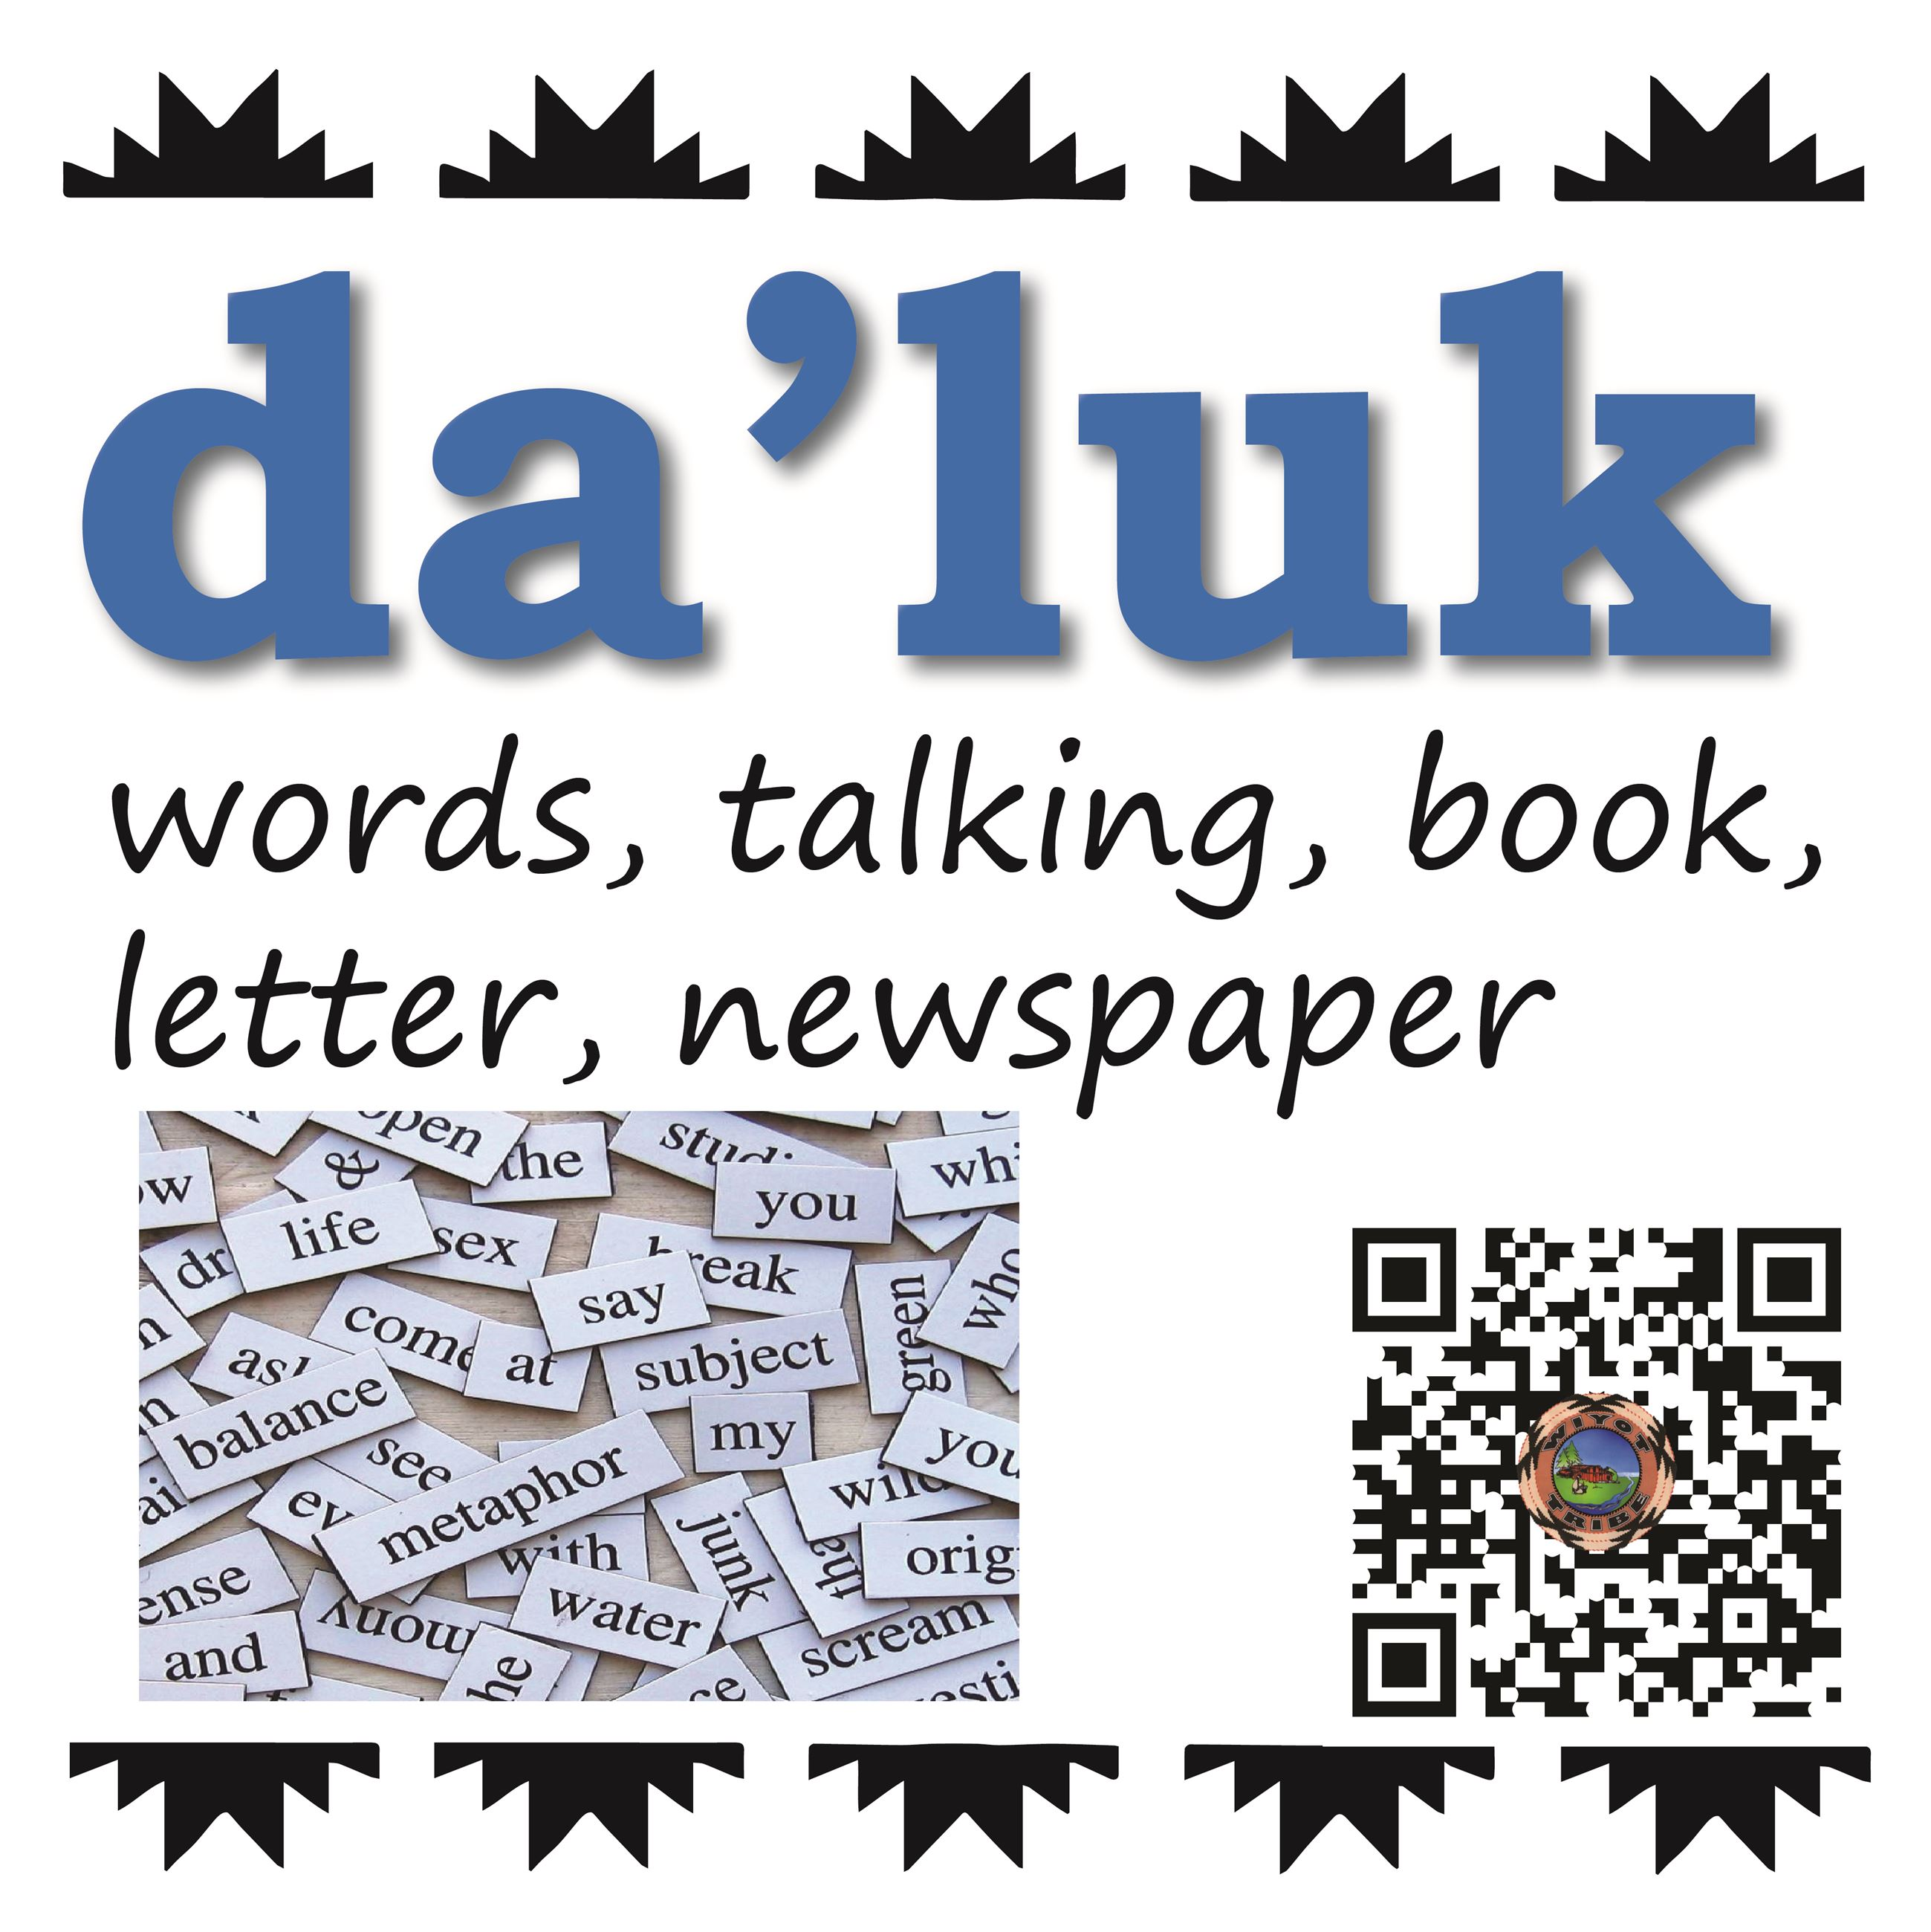 da'luk (words, talking, book, letter, newspaper)